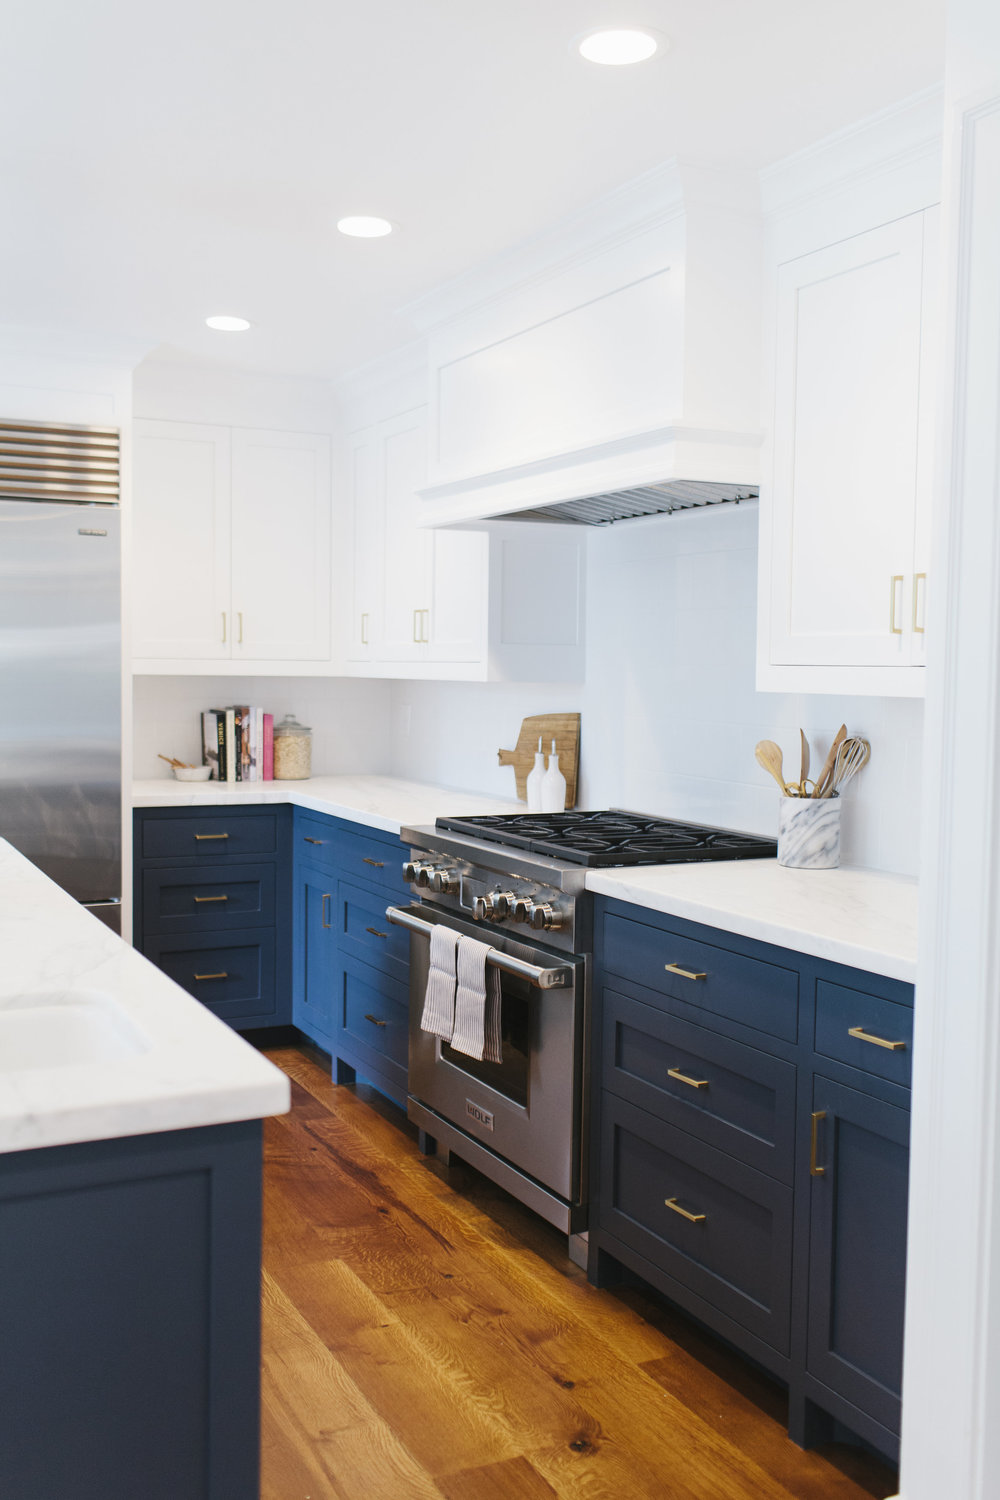 Lynwood remodel kitchen studio mcgee for Hale navy benjamin moore